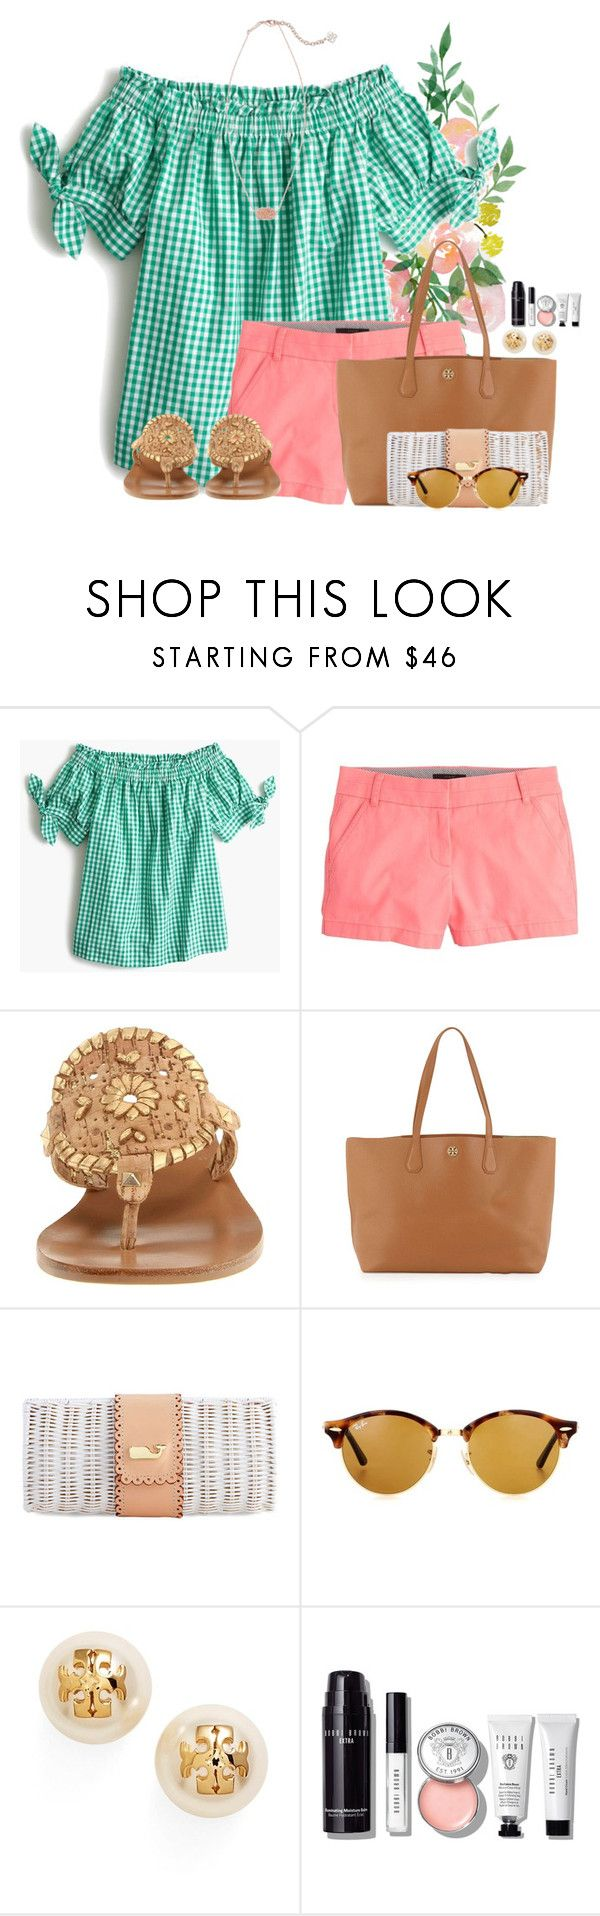 """""""~G is for Gingham~"""" by flroasburn ❤ liked on Polyvore featuring J.Crew, Jack Rogers, Tory Burch, Ray-Ban, Bobbi Brown Cosmetics and Kendra Scott"""